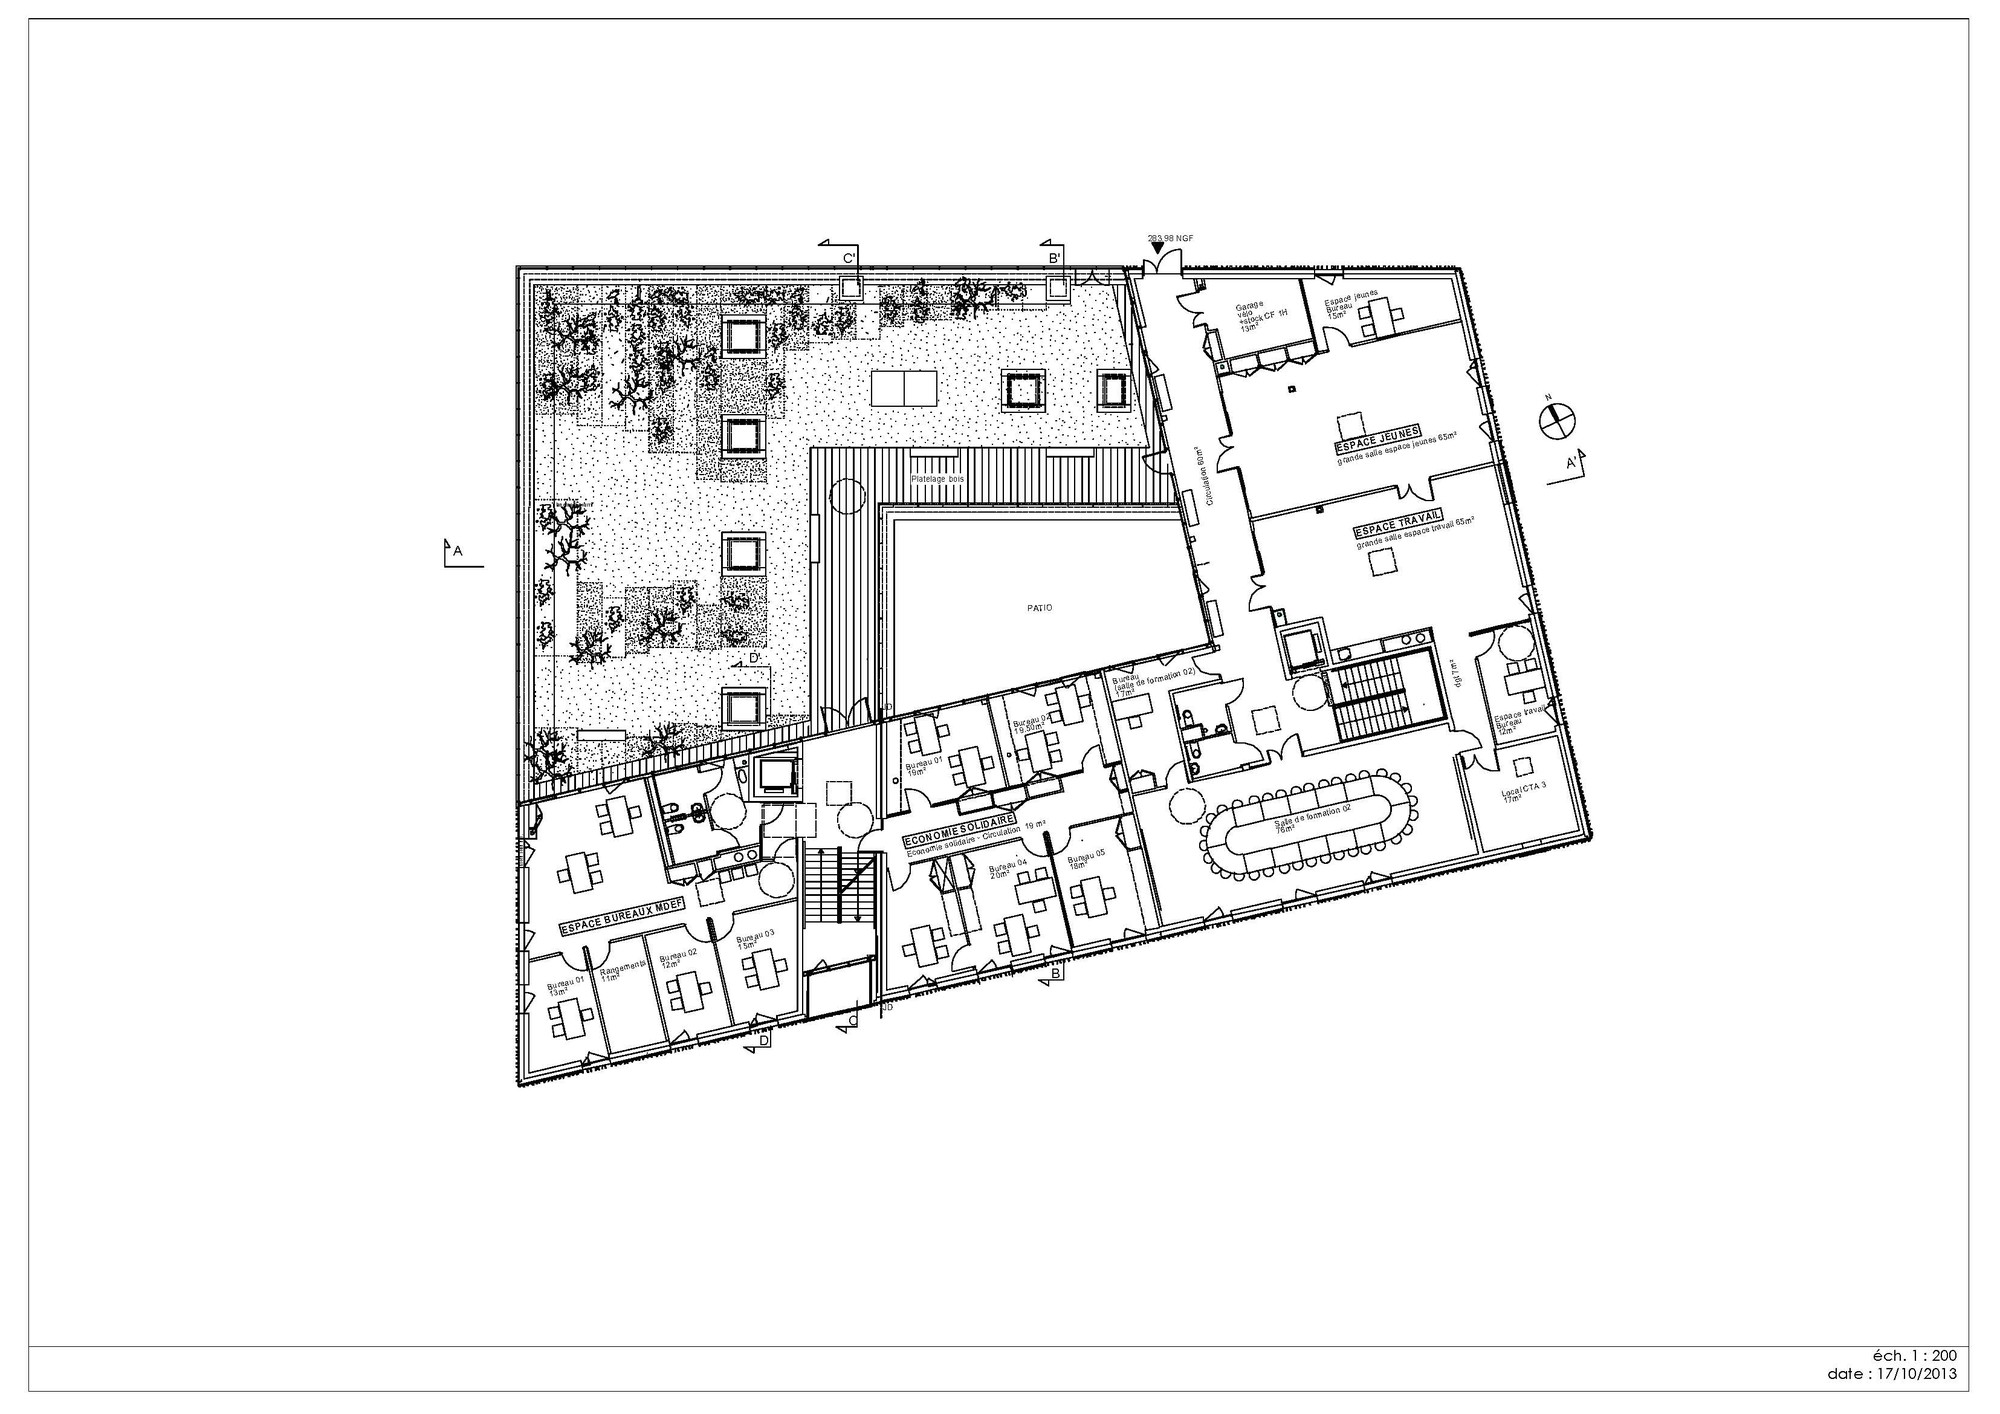 File Plan of Bramante's dome  from Serlio  Character of Renaissance Architecture additionally 54cafd83e58ece5c5e0002e7 Floor Plan additionally 5260ca5ae8e44e88a0000081 Social Center In Aubenas  posite Architectes Floor Plan likewise 363313894914216128 moreover Rock On A Slope Unterlandstattner Architekten. on architecture floor plans